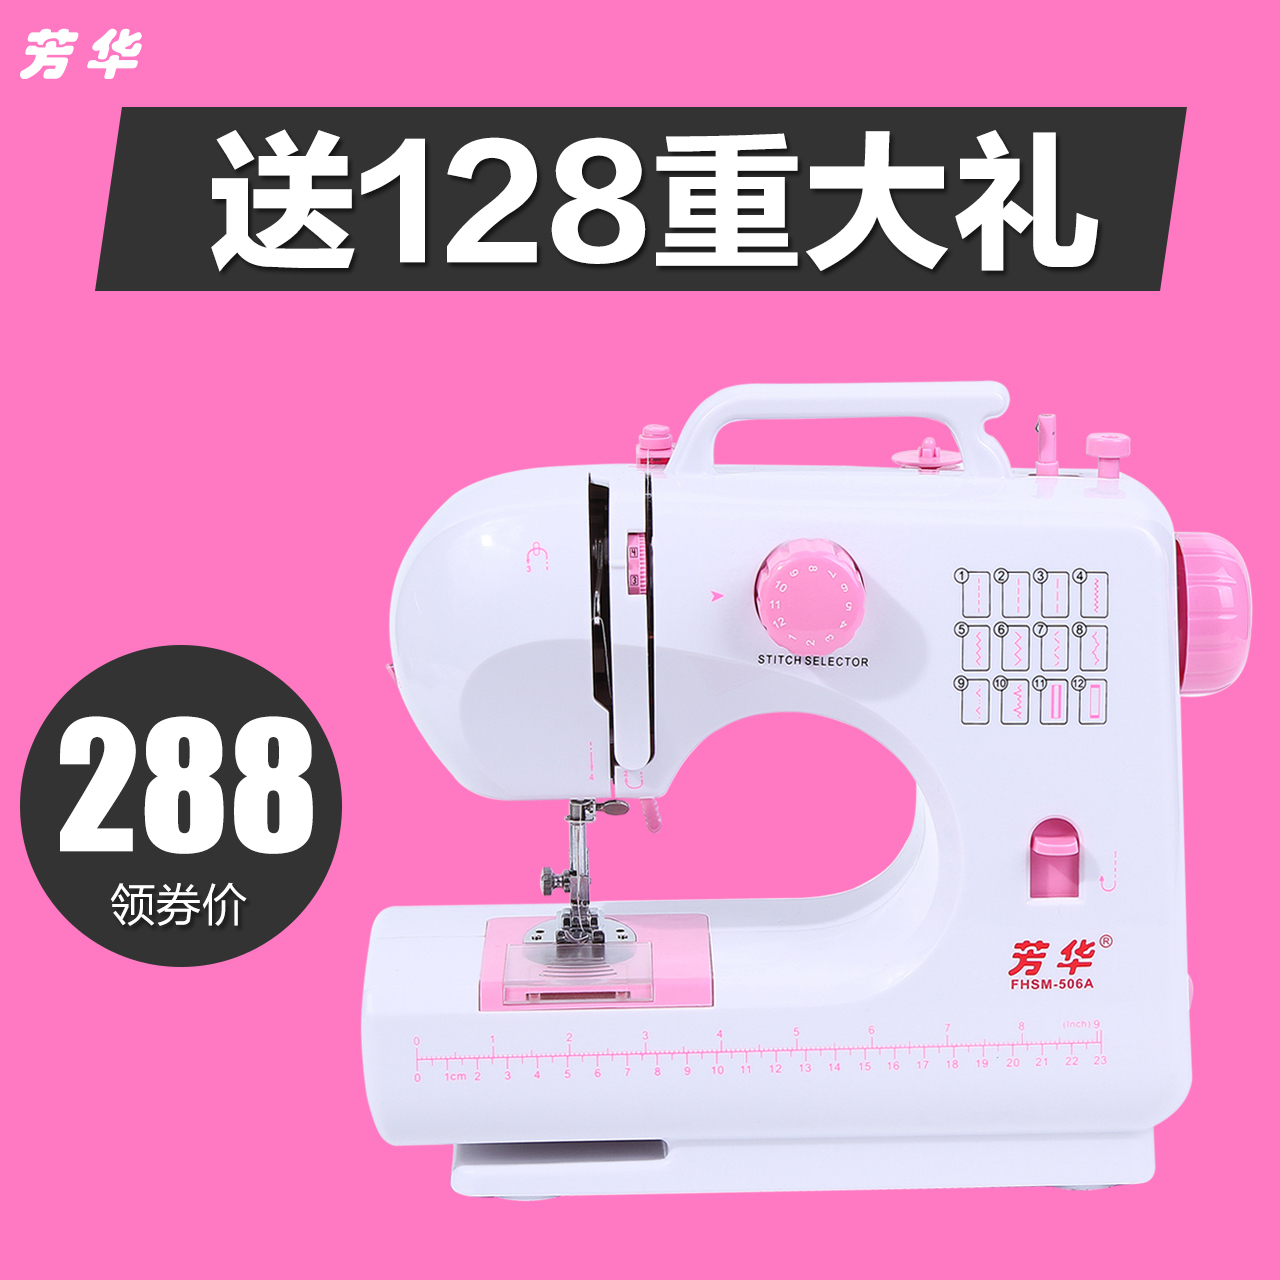 Youth 506a electric sewing machine multifunction household sewing eat thick catcher locking eyes mini small desktop machine